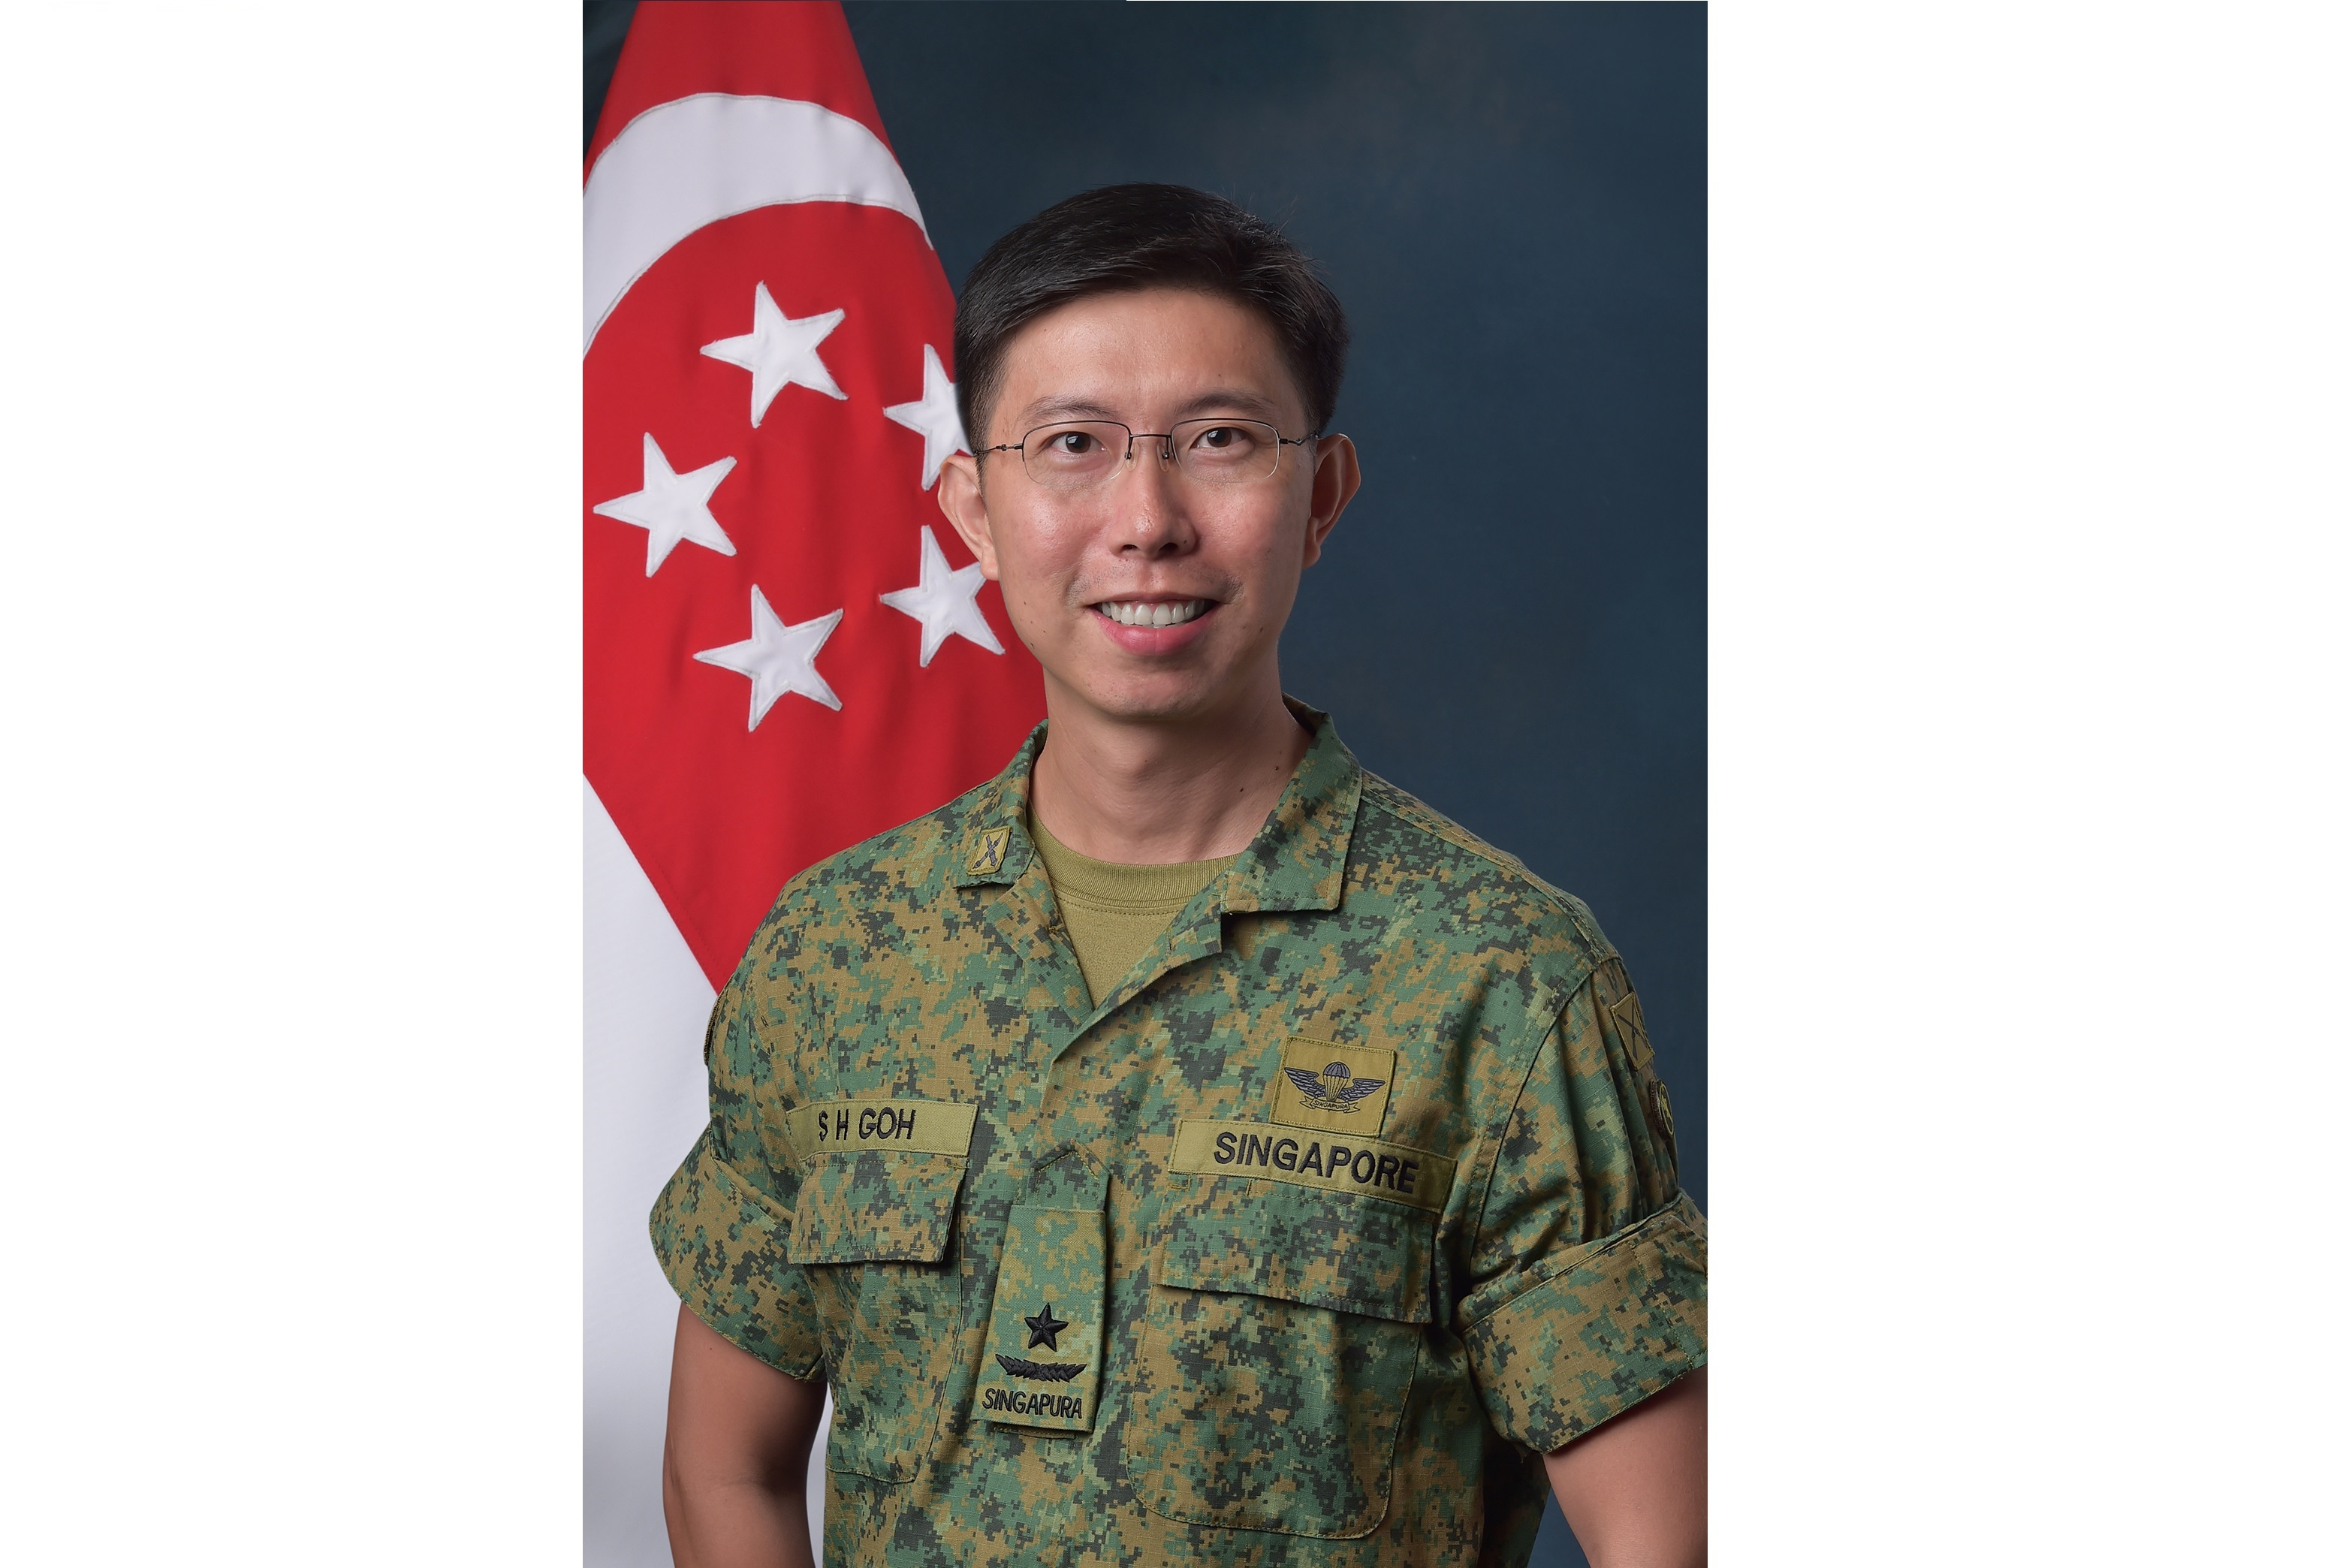 Brigadier-General (BG) Goh Si Hou, currently Commander 6th Singapore Division, will take over as Chief of Army on 21 March 2018.